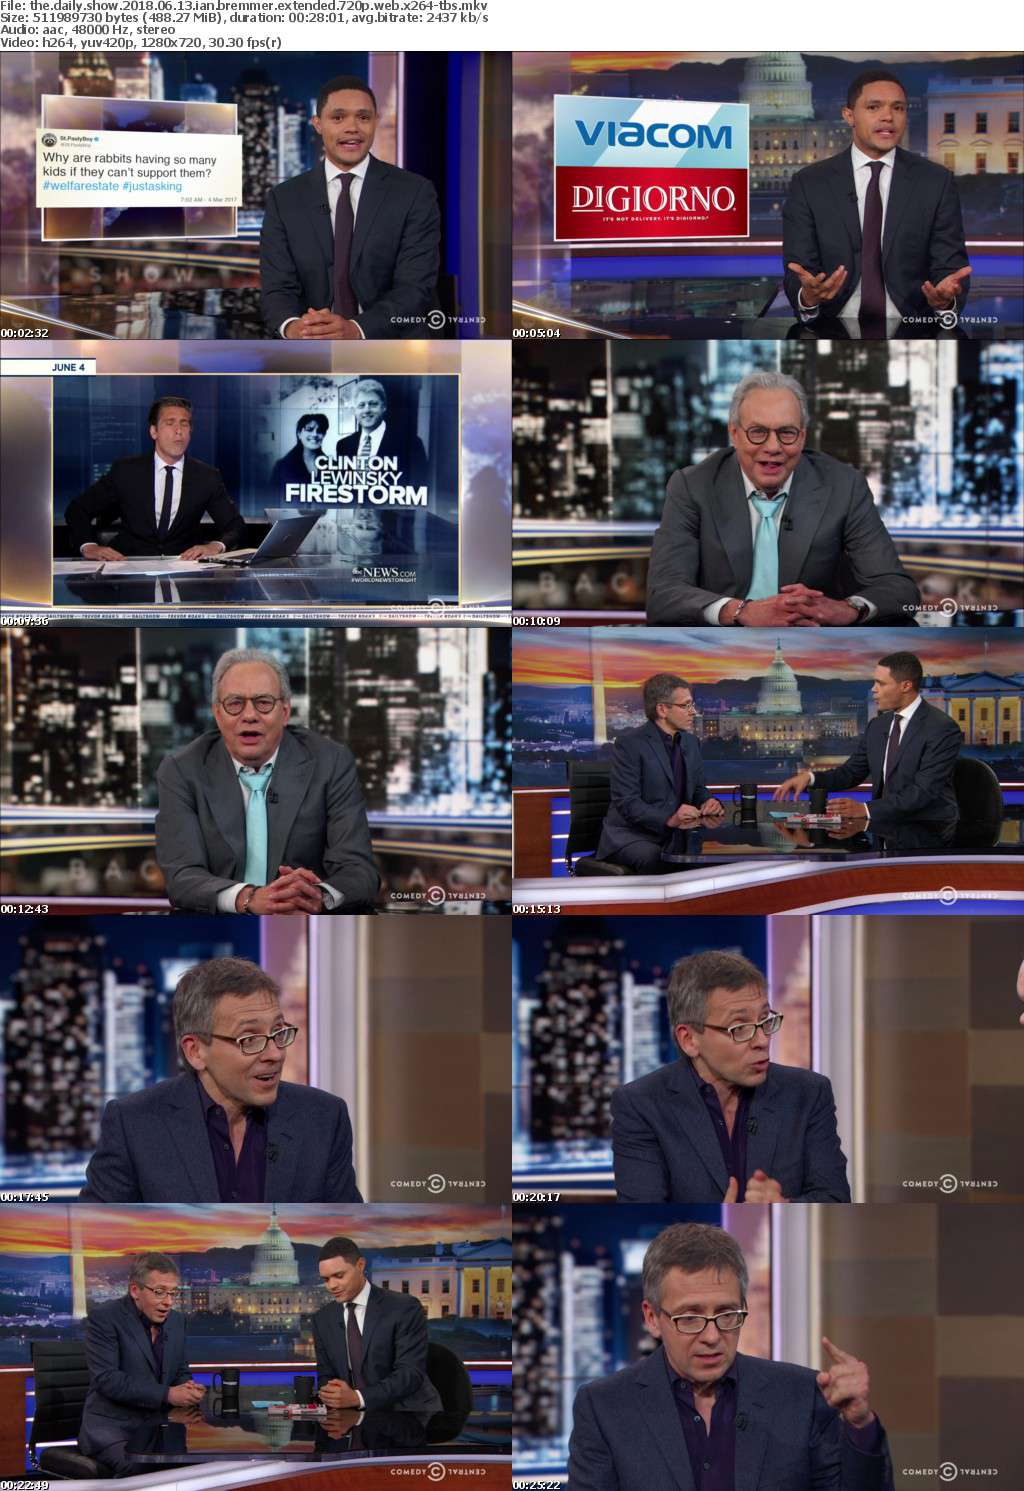 The Daily Show 2018 06 13 Ian Bremmer EXTENDED 720p WEB x264-TBS